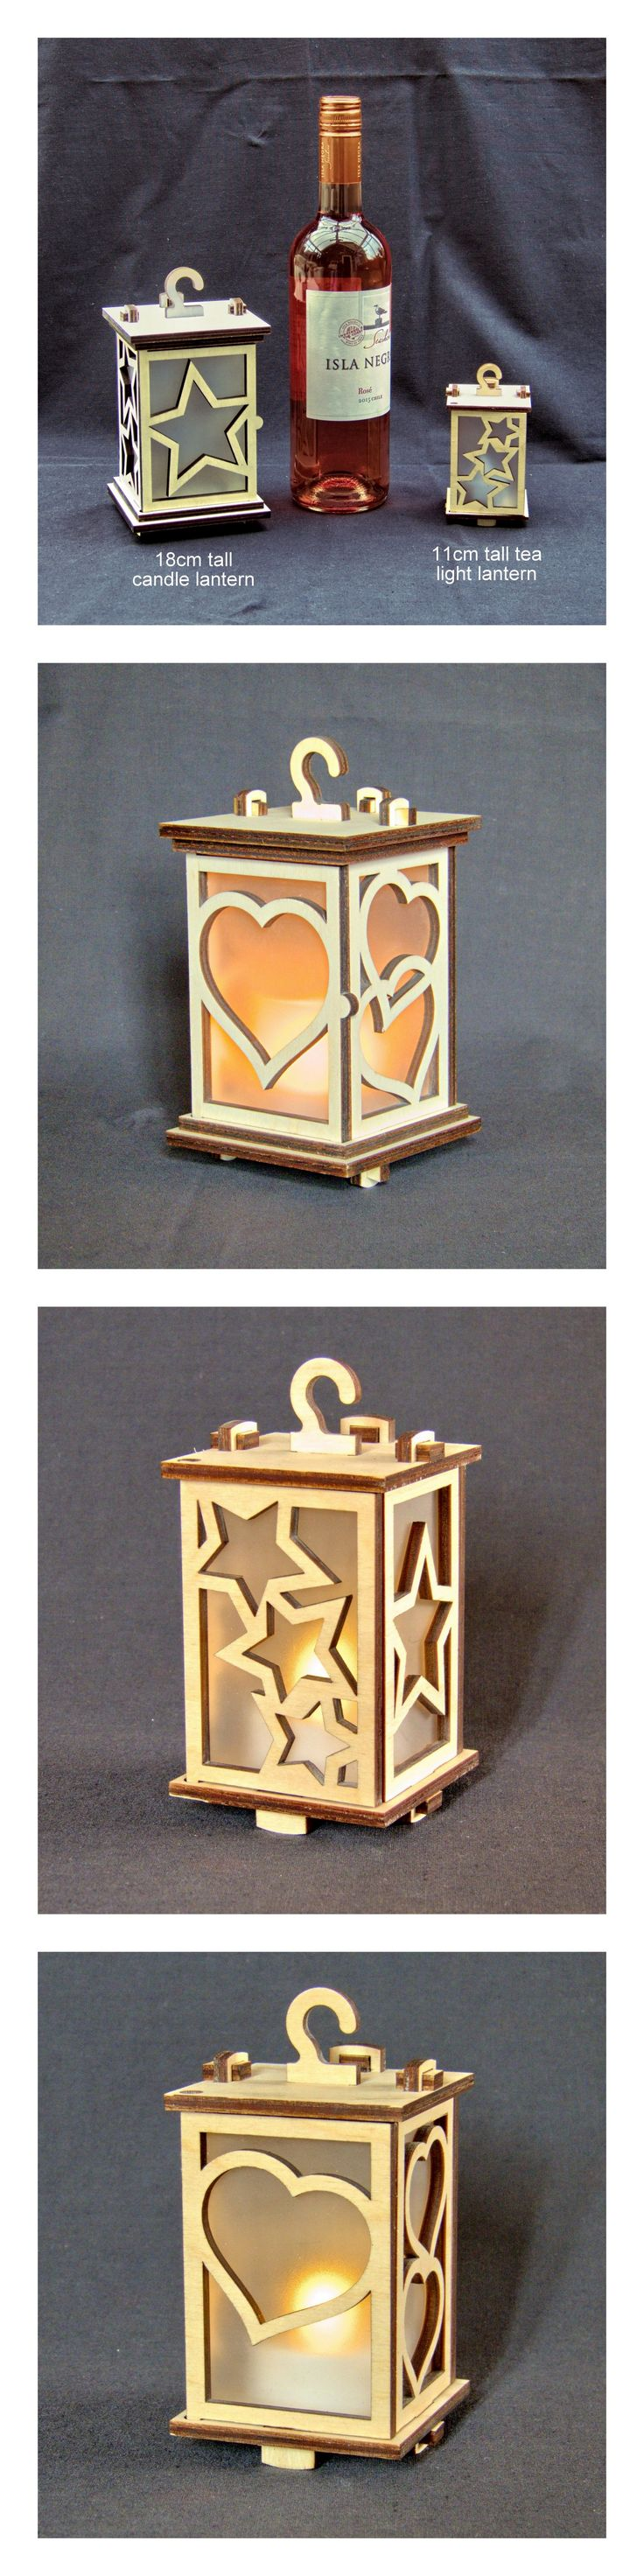 Two sizes of laser cut lantern. Download DXF project files for your laser cutter. The 18cm lantern is cut from 6mm poplar ply, the 11cm lantern is cut from 4mm birch ply.